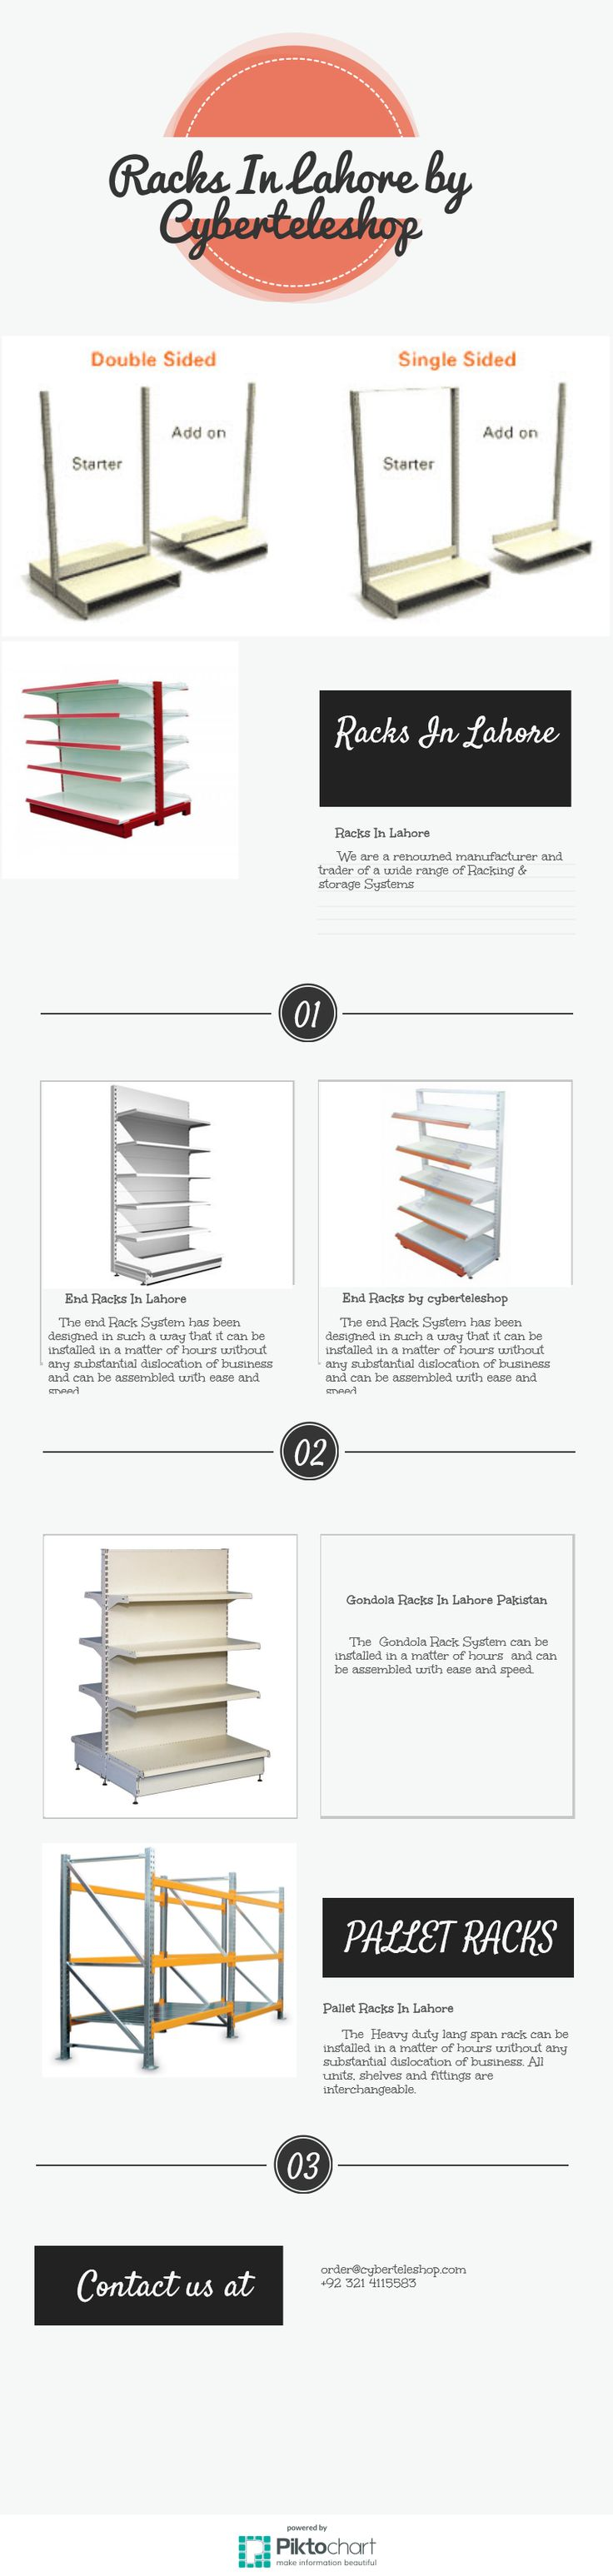 13 best Racks images on Pinterest | Shelving racks, Store shelving ...